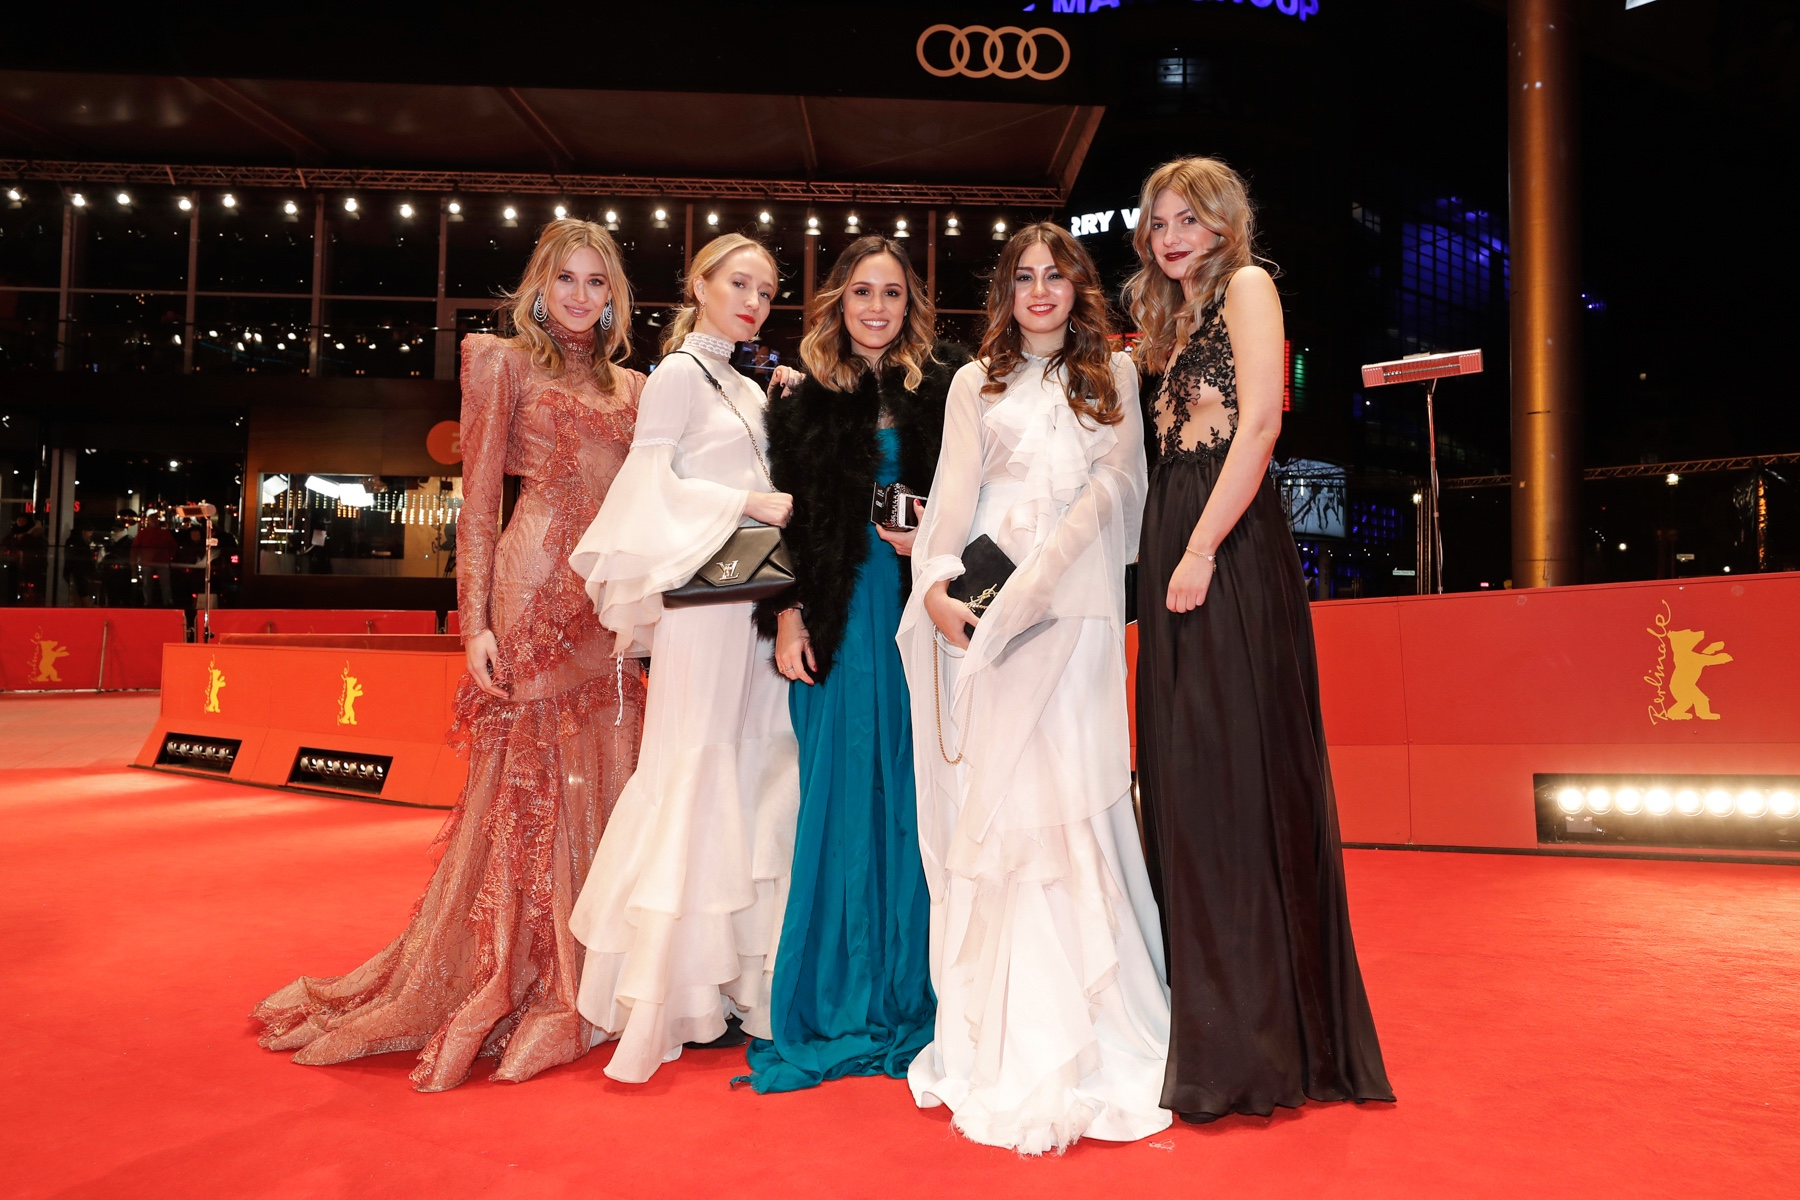 'Wild Mouse' Premiere - Audi At The 67th Berlinale International Film Festival